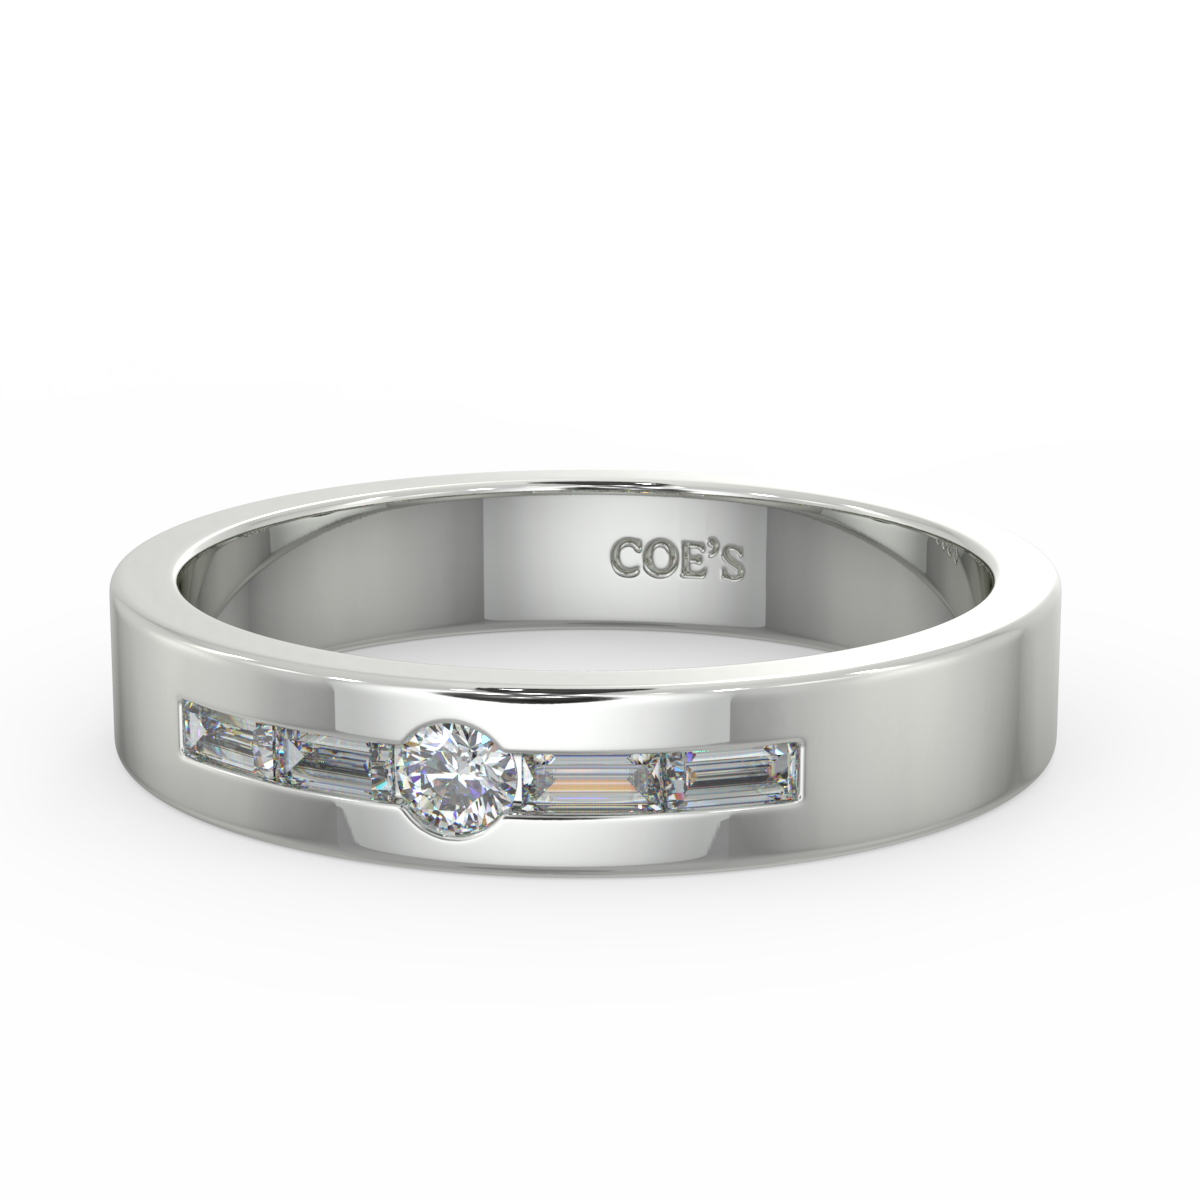 Innsbruck - Mens diamond set wedding band